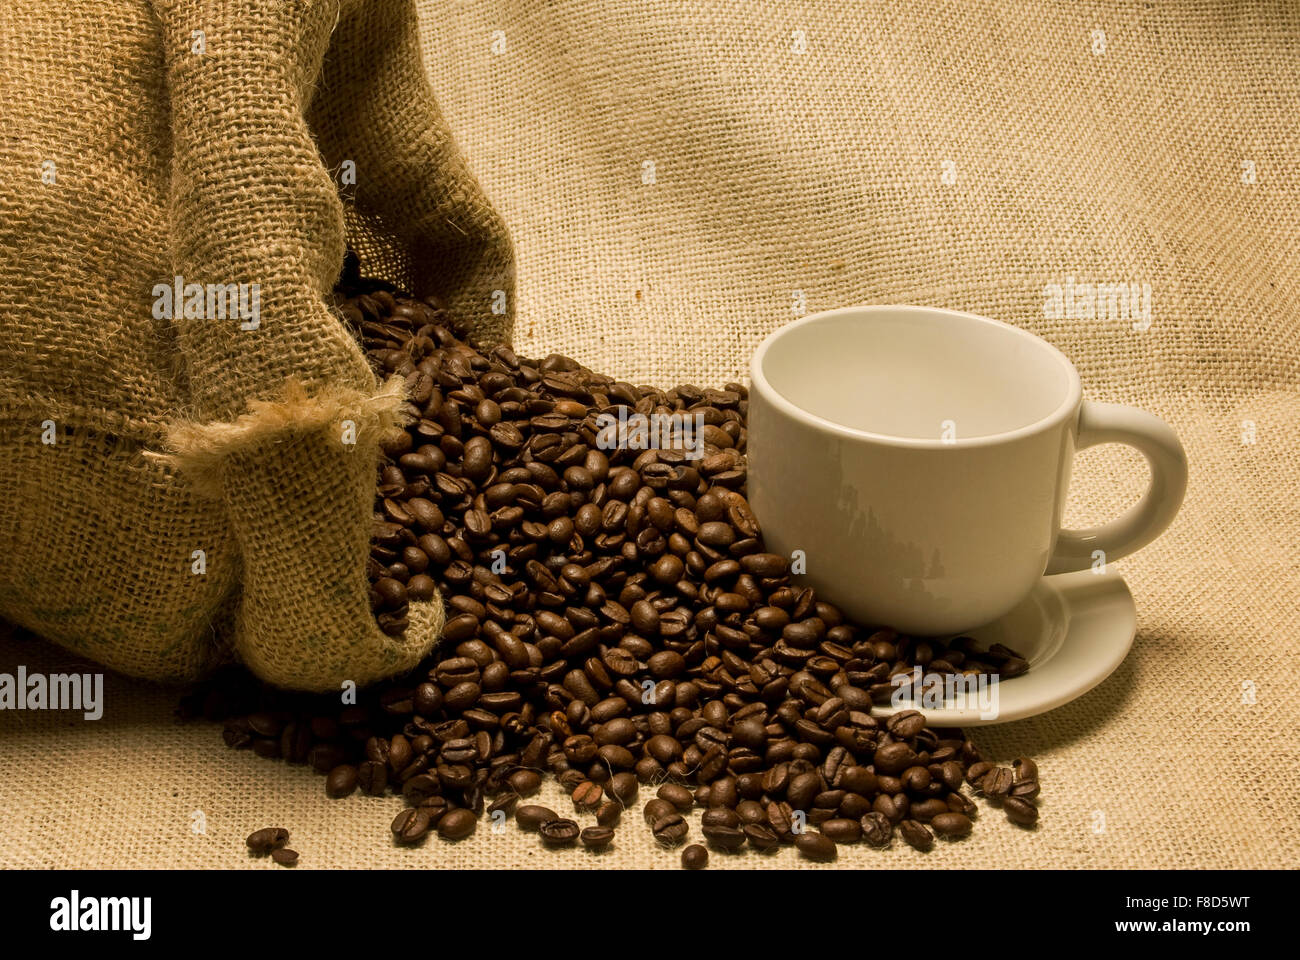 Cup and Saucer With Coffee Beans Pouring From Burlap Bag on a Burlap Background - Stock Image